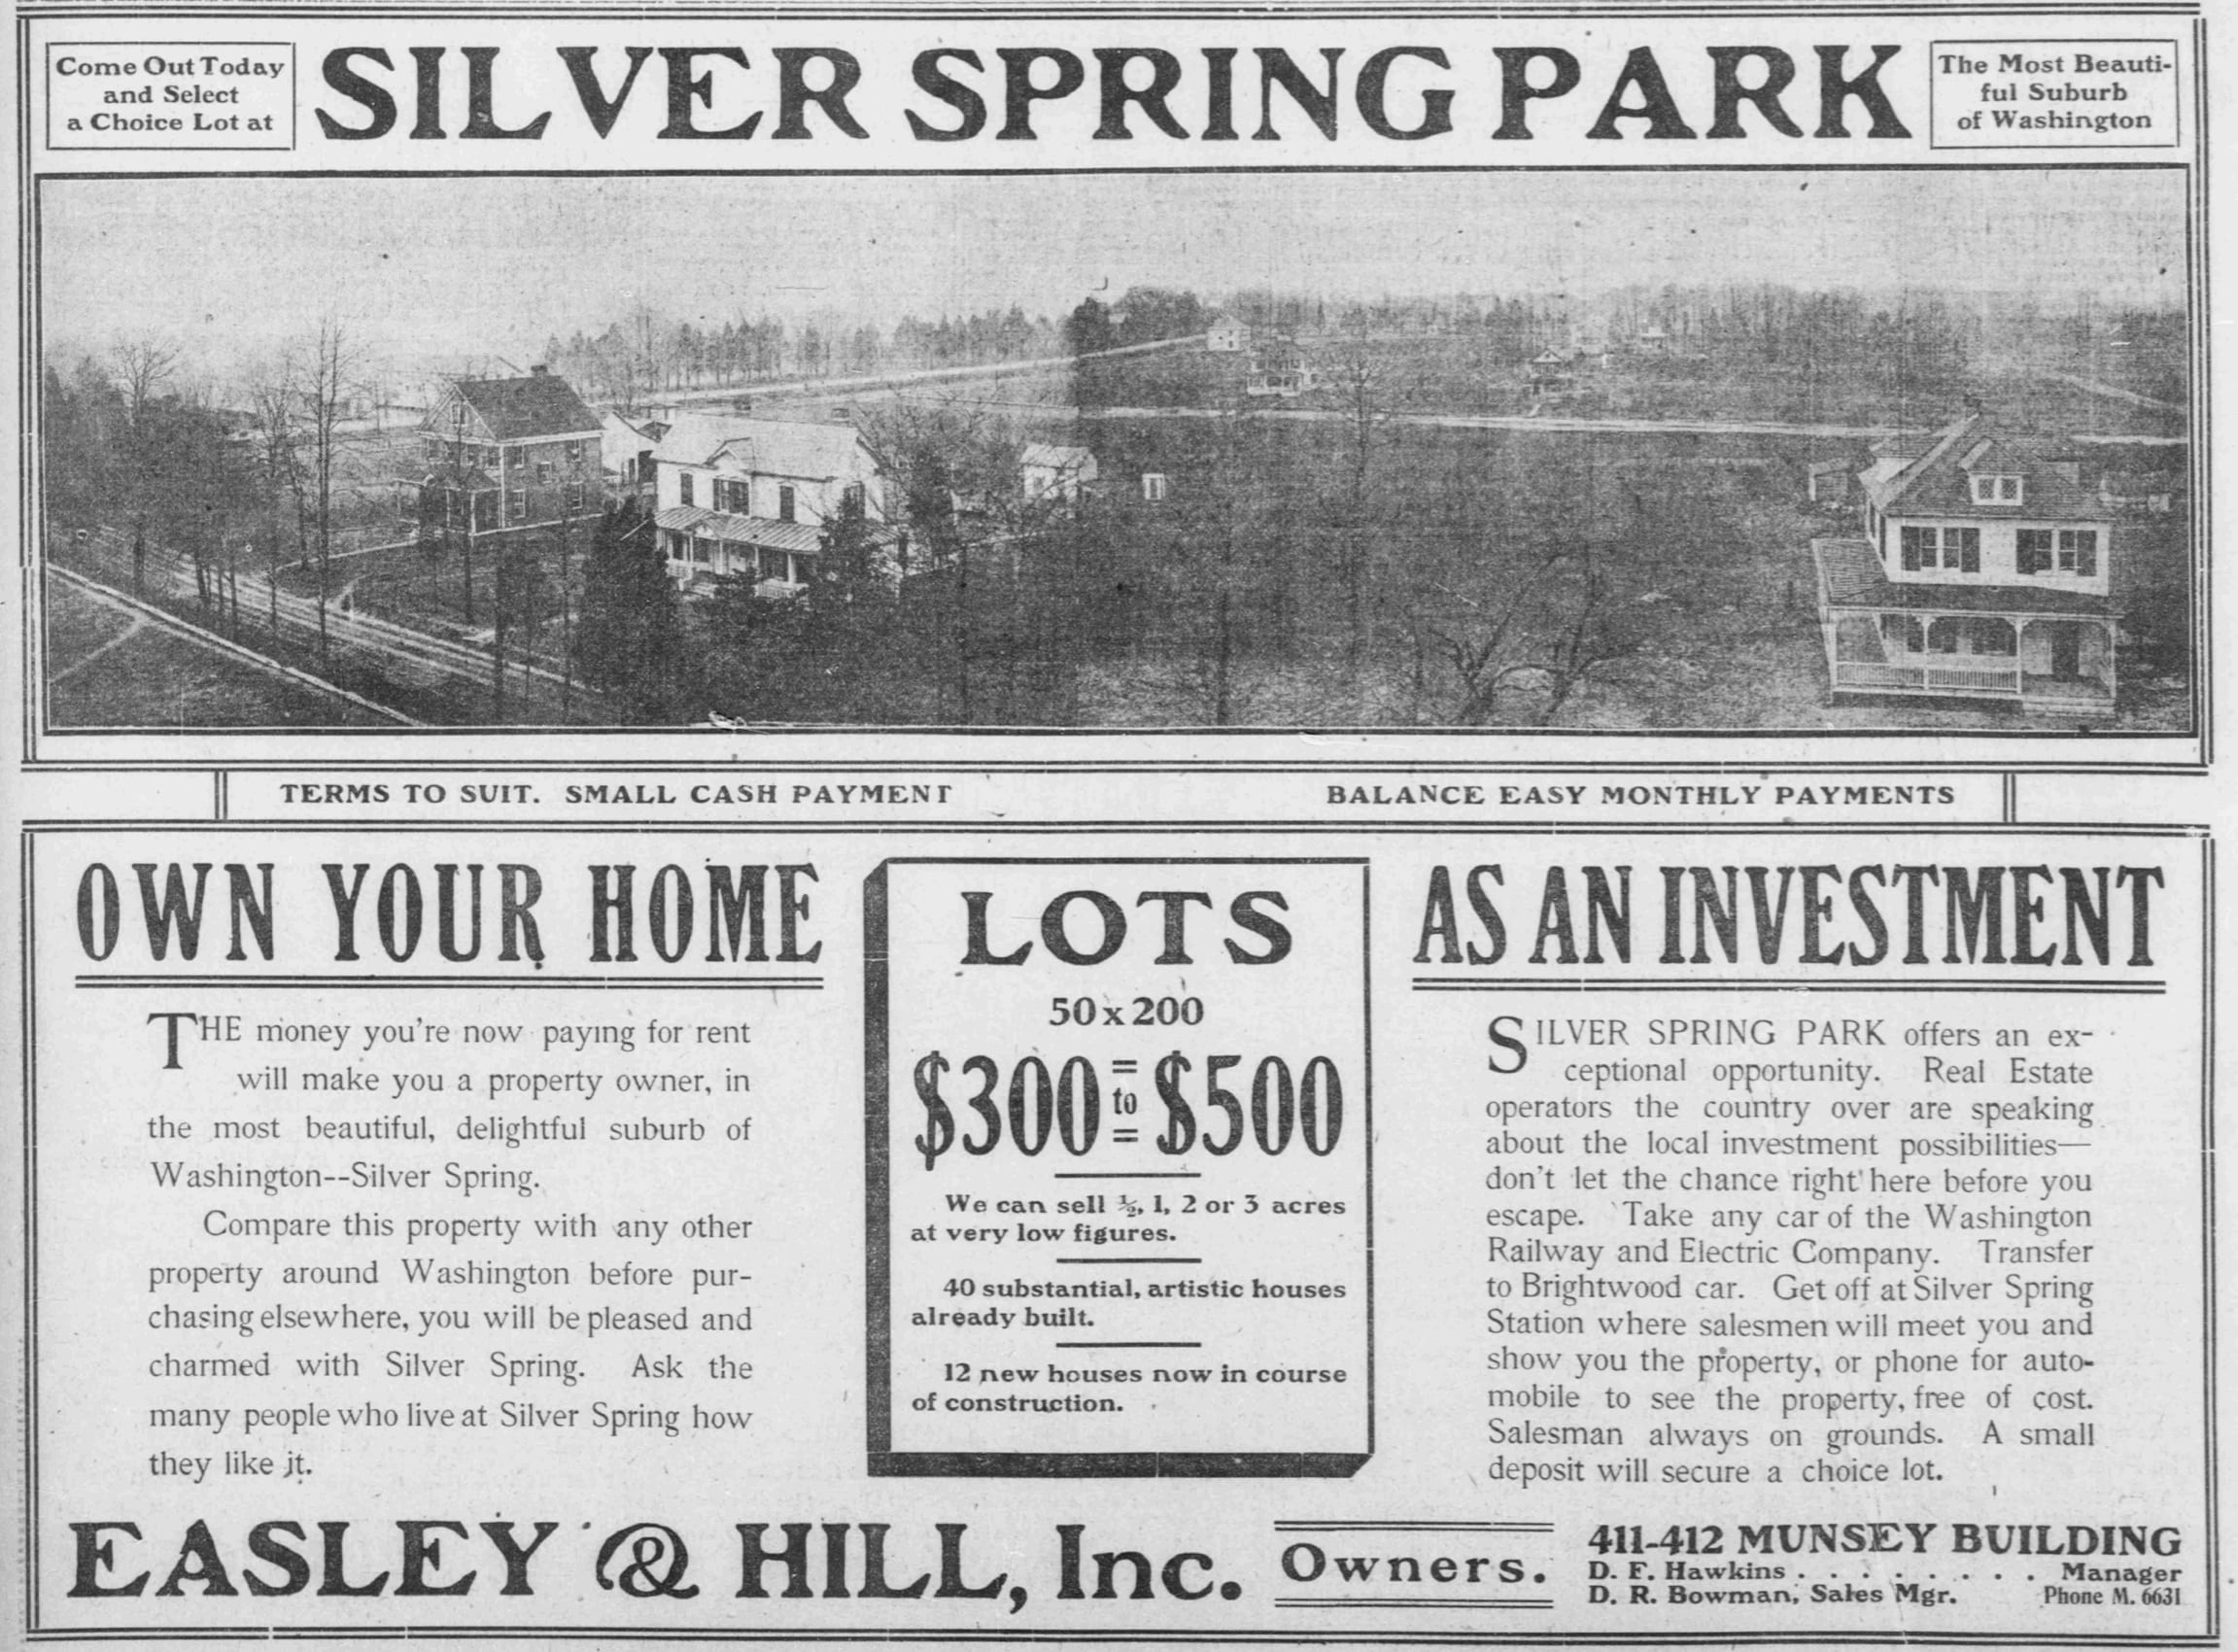 1907 advertisement for Silver Spring Park